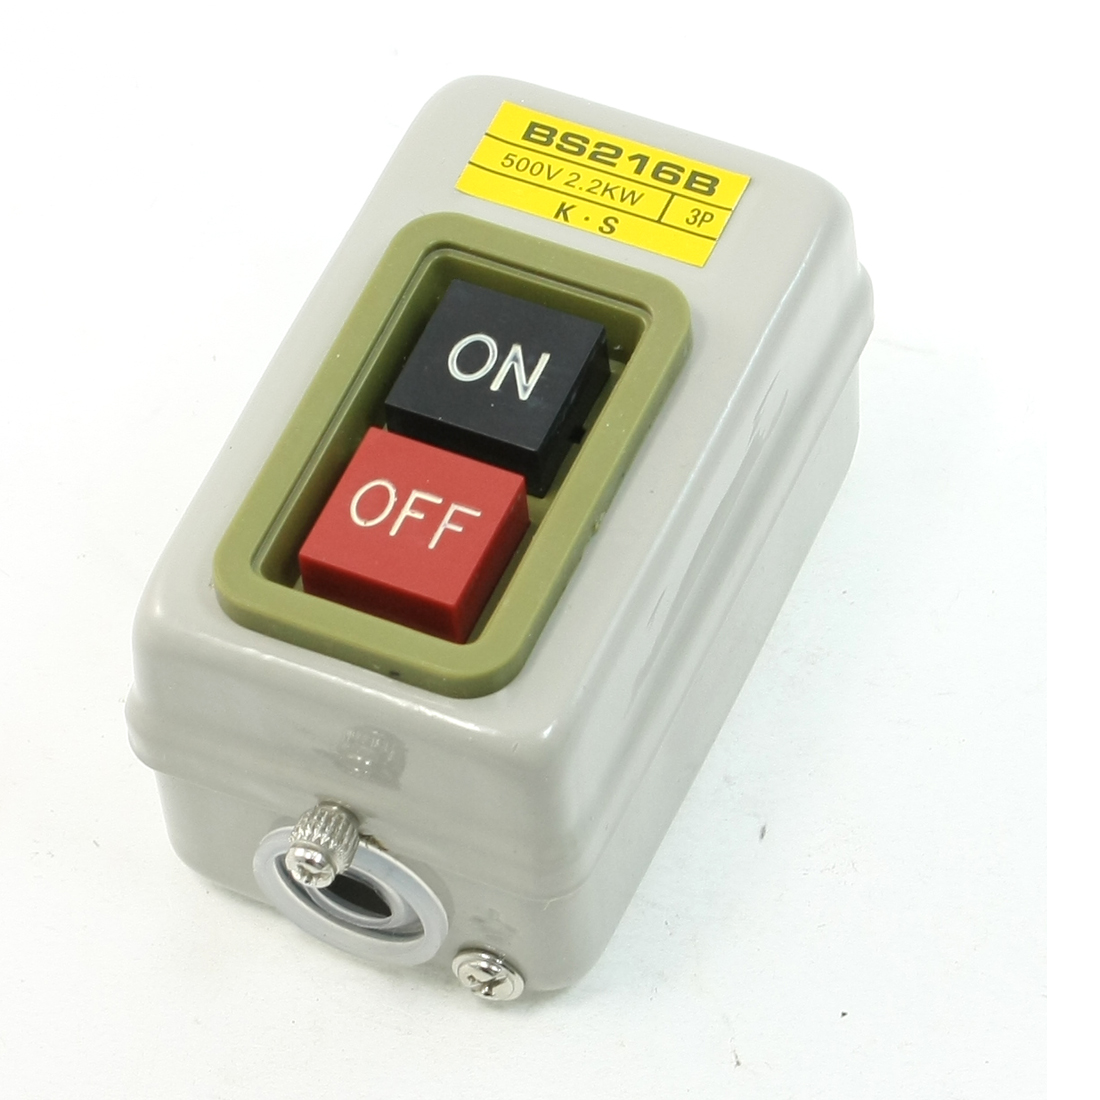 ON/OFF 3P Self Locking Power Push Button Switch AC 500V 2.2KW